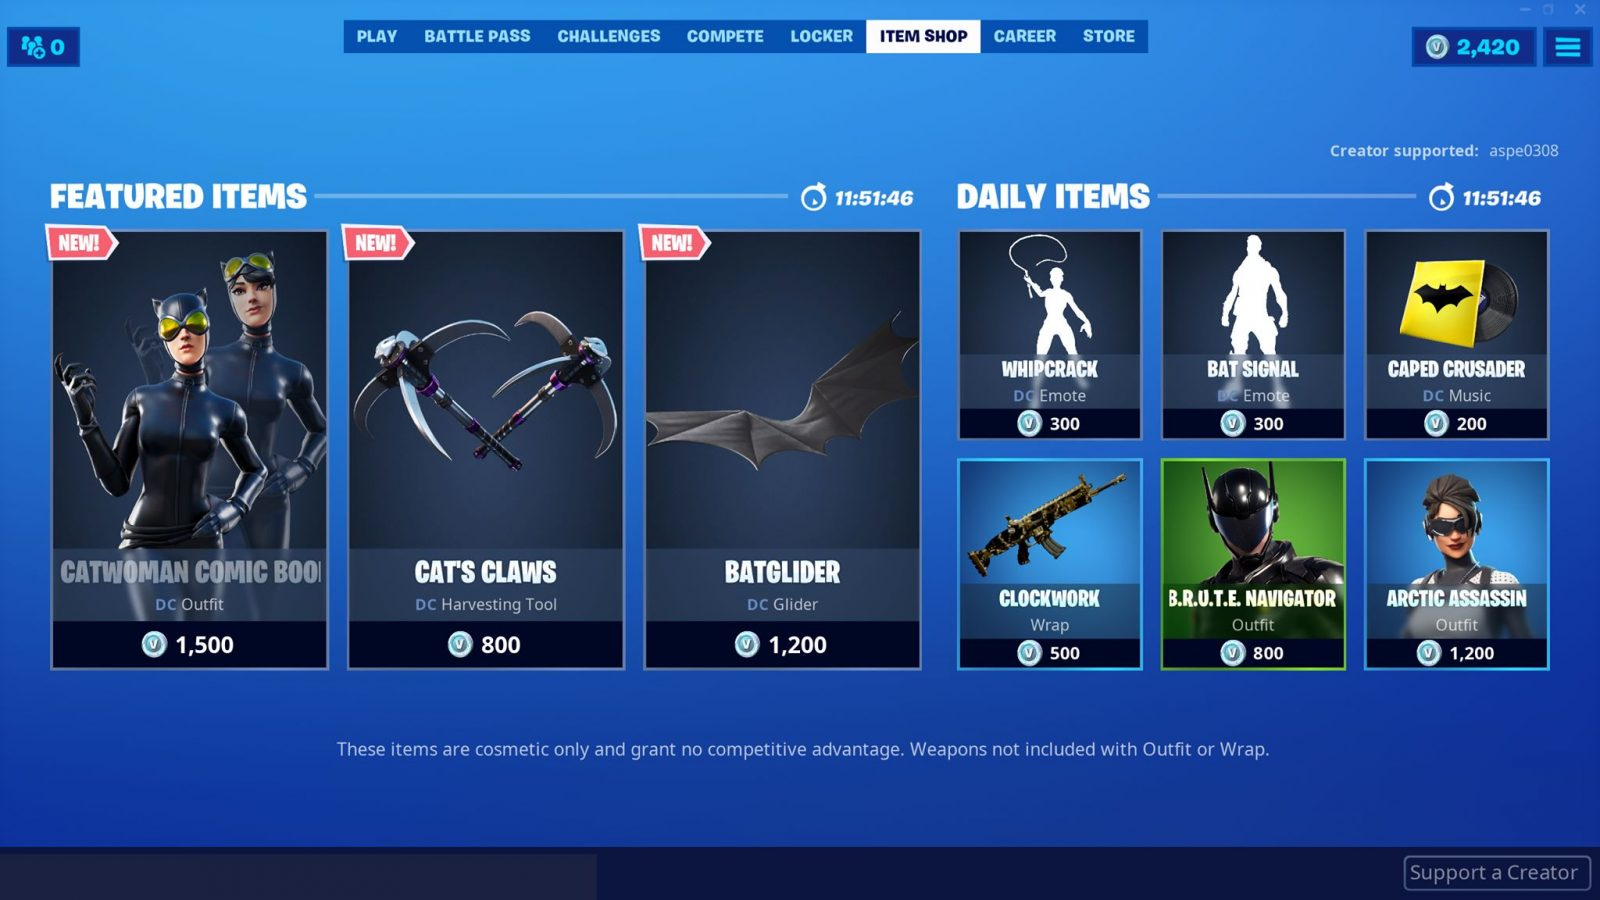 Item Shop is here! We can now get the Catwoman outfit and a few other DC cosmeti…